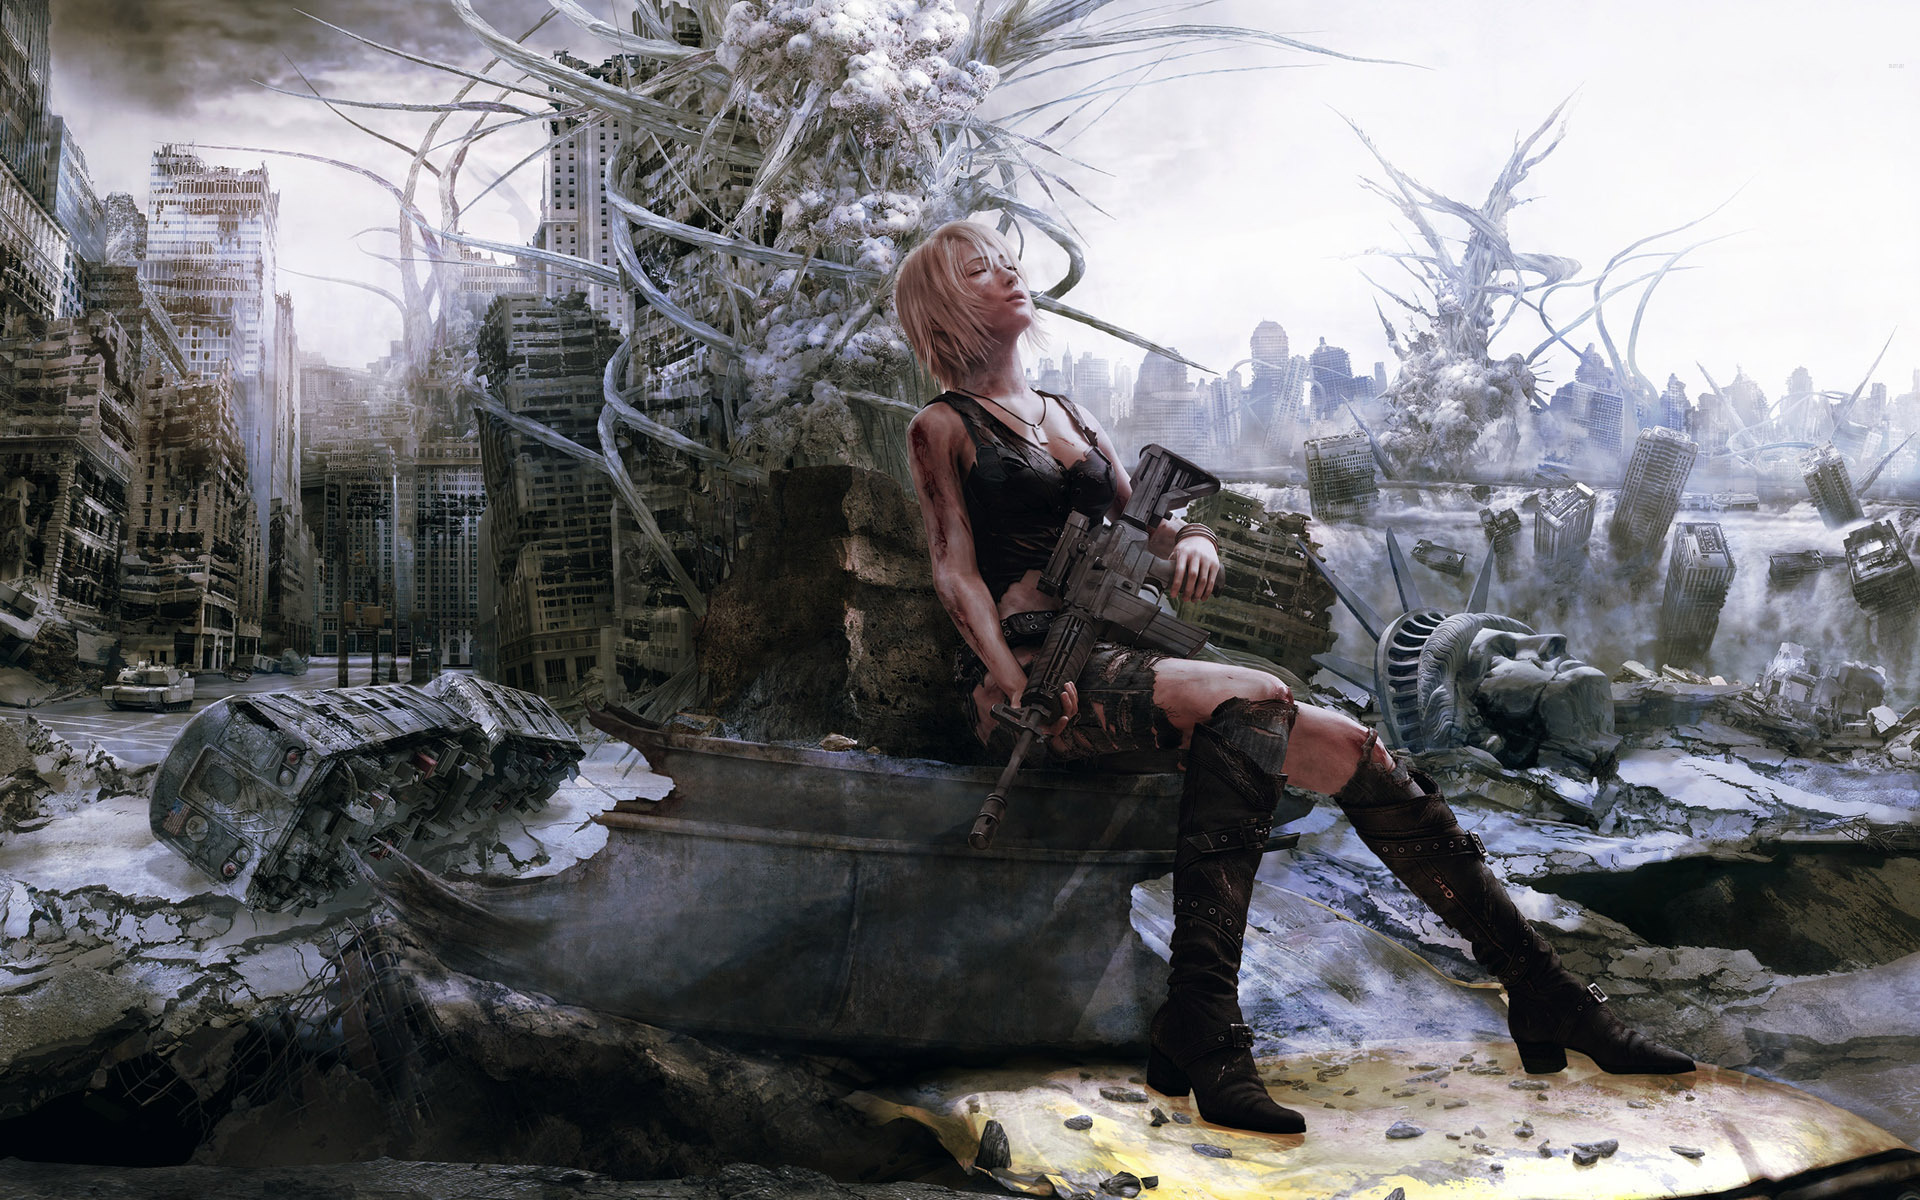 Uhd Wallpapers Girl Cgi Artwork Gun Video Games Women Apocalyptic The